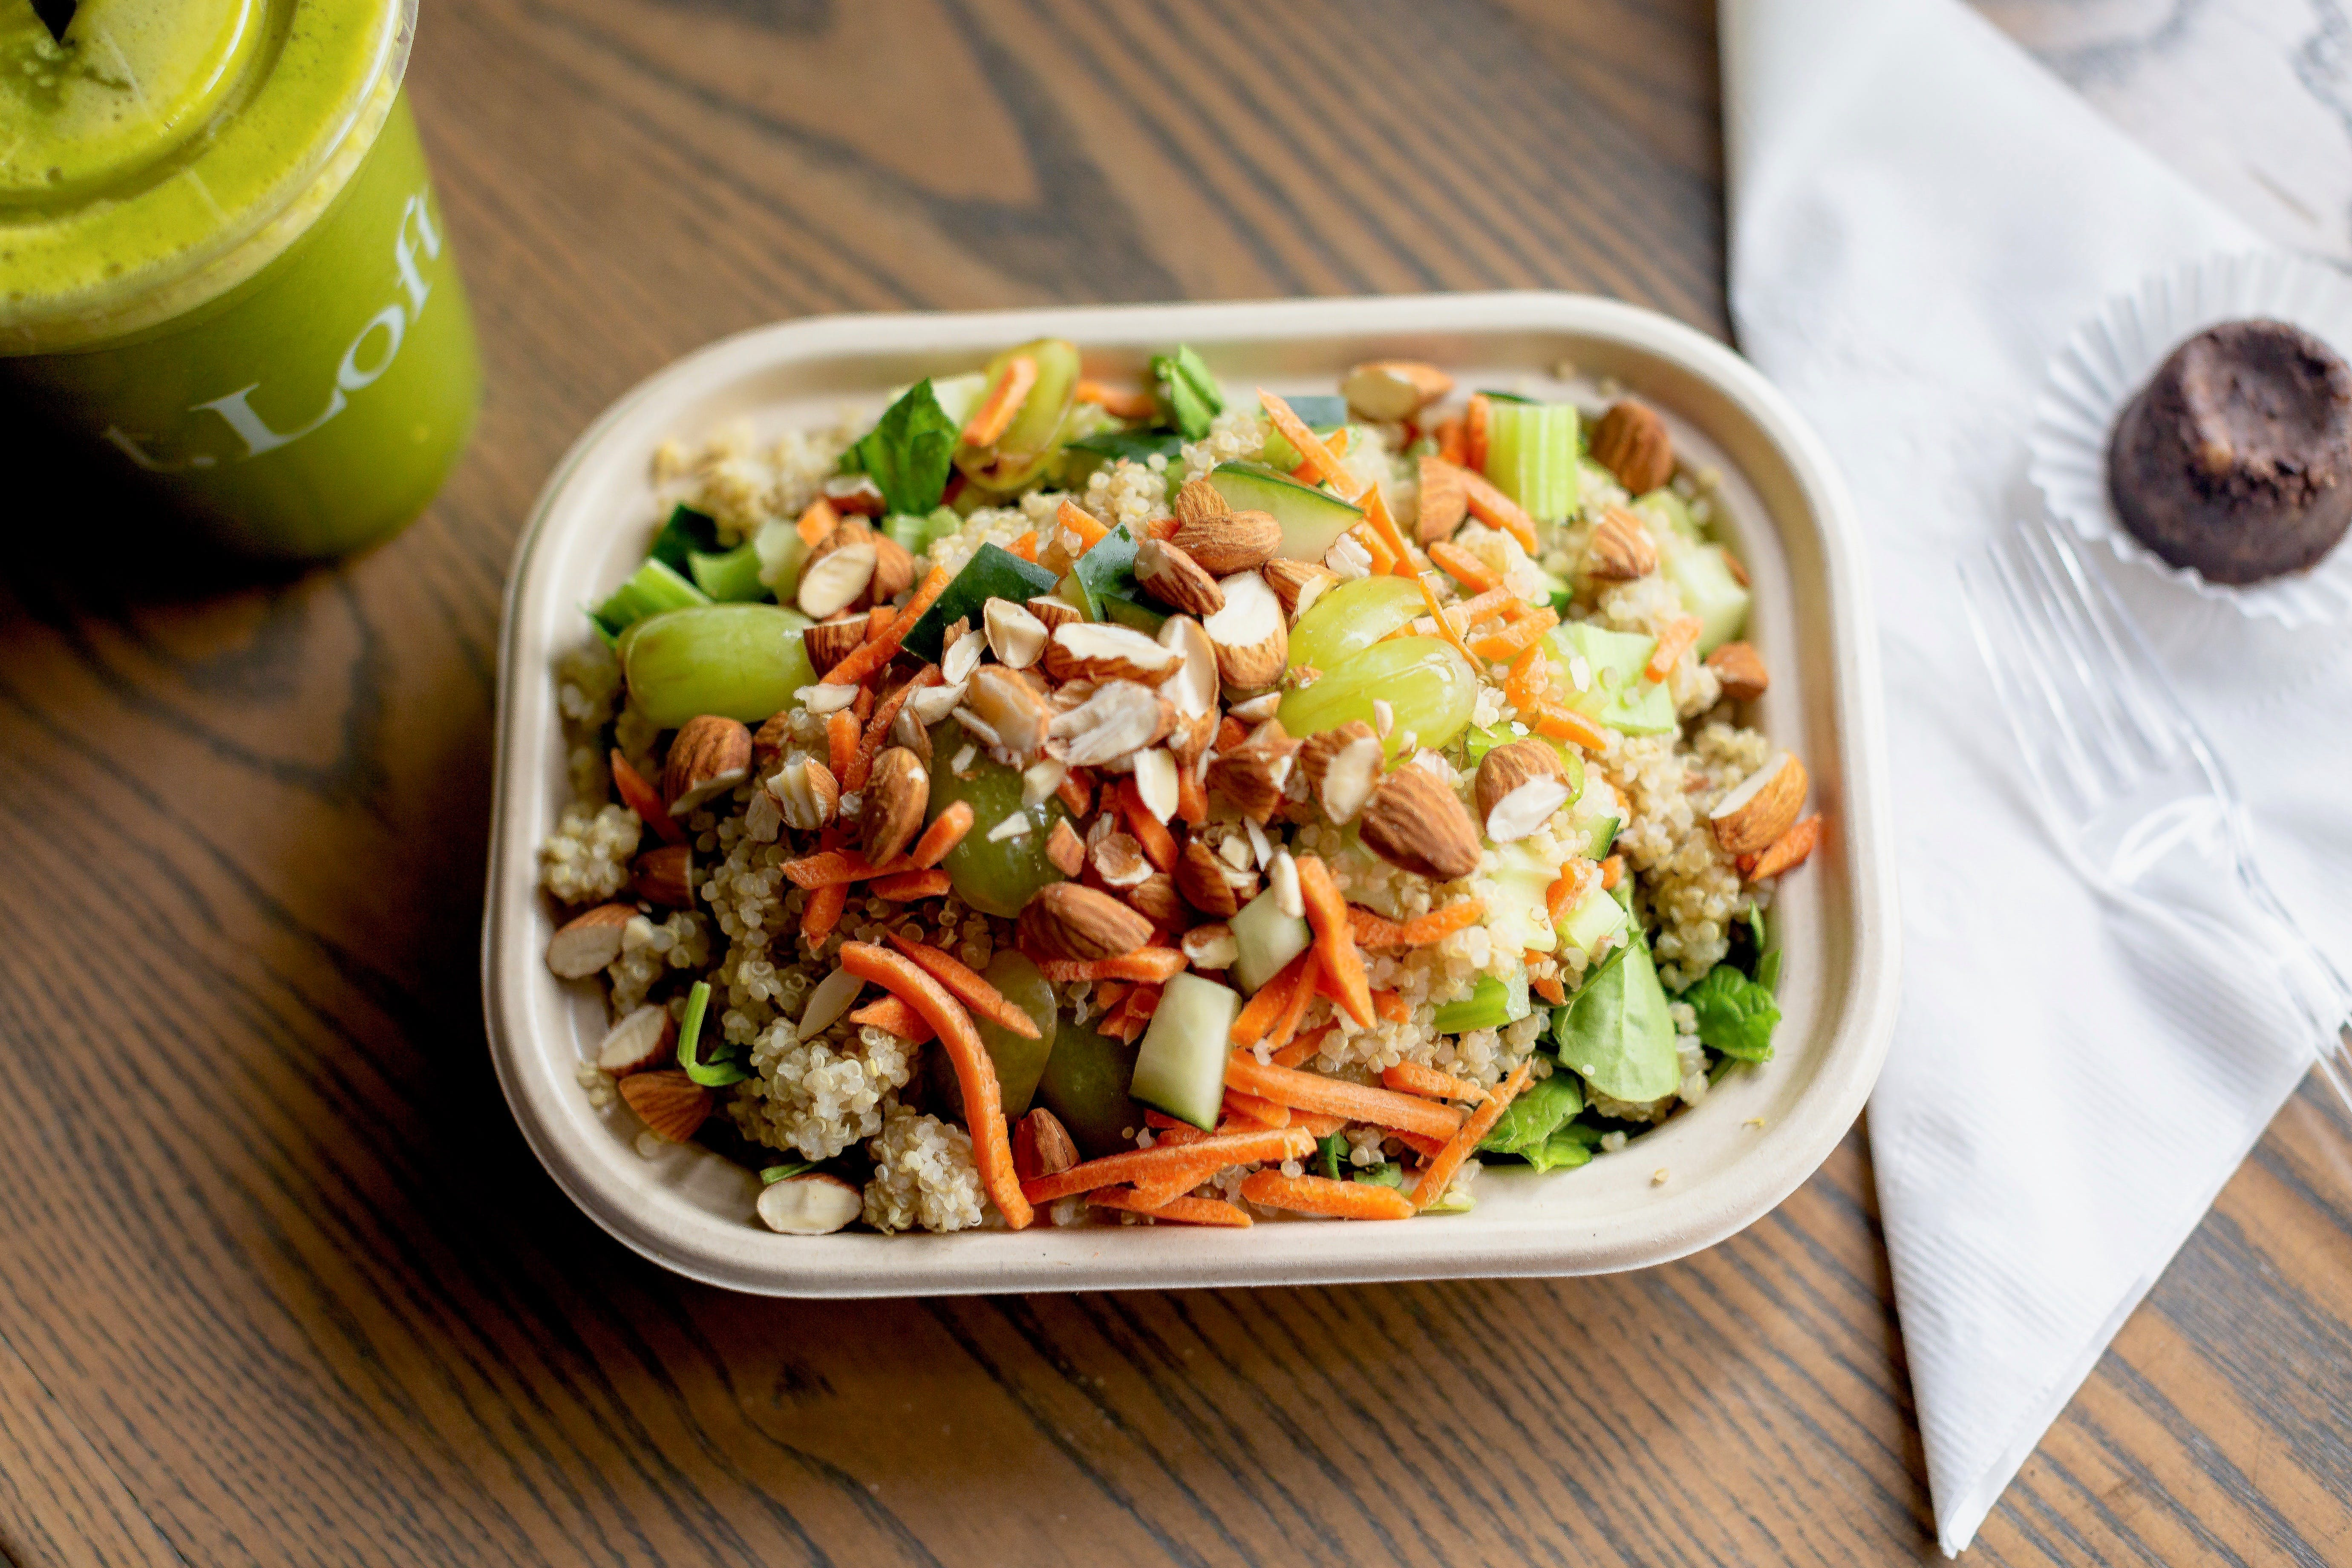 Cleanse Salad (GF, DF) from t. Loft in Lawrence, KS